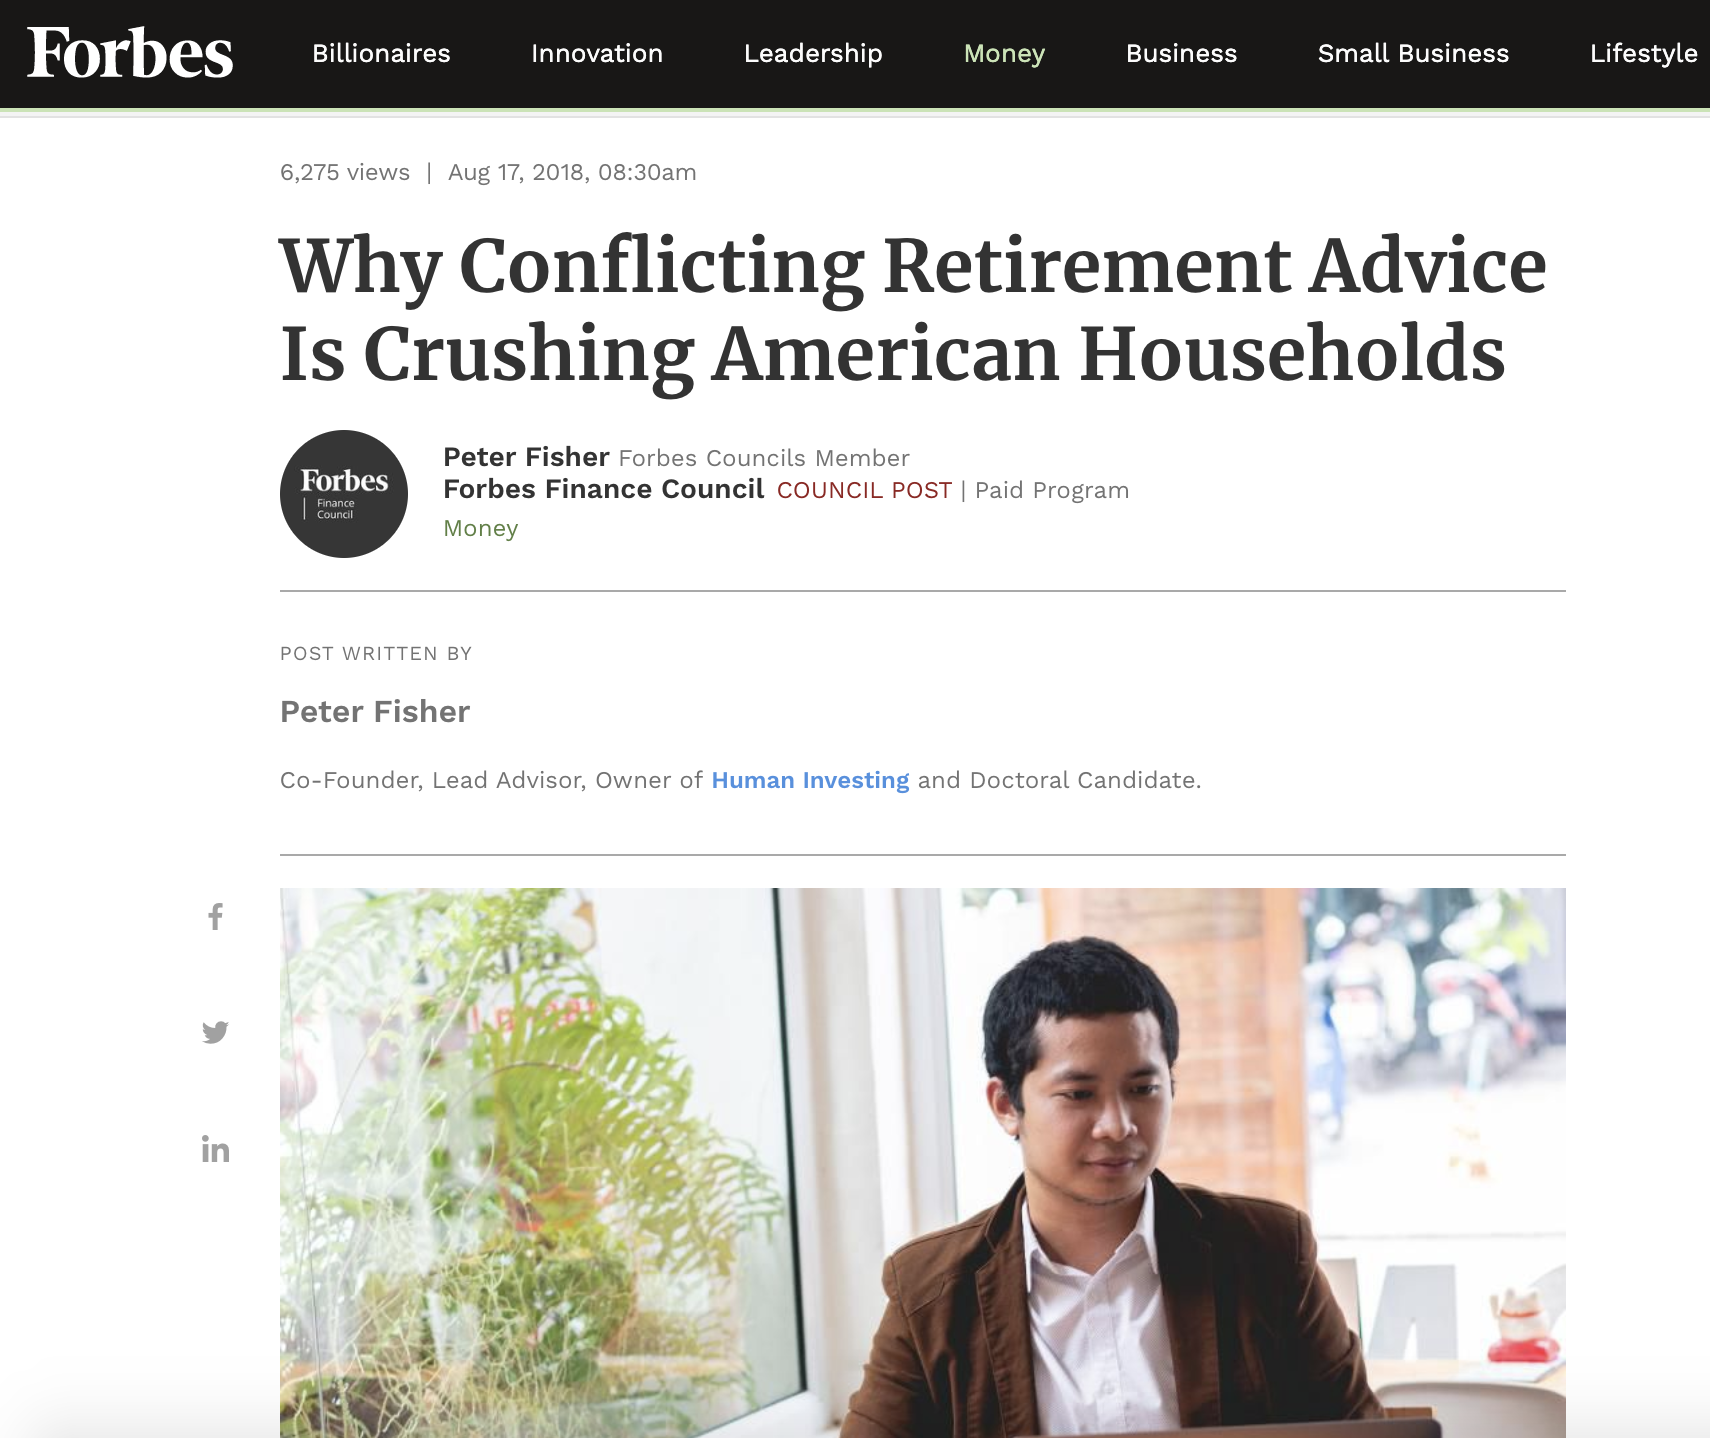 WHY CONFLICTING RETIREMENT ADVICE IS CRUSHING AMERICAN HOUSEHOLDS - Forbes ∙ August 17, 2018